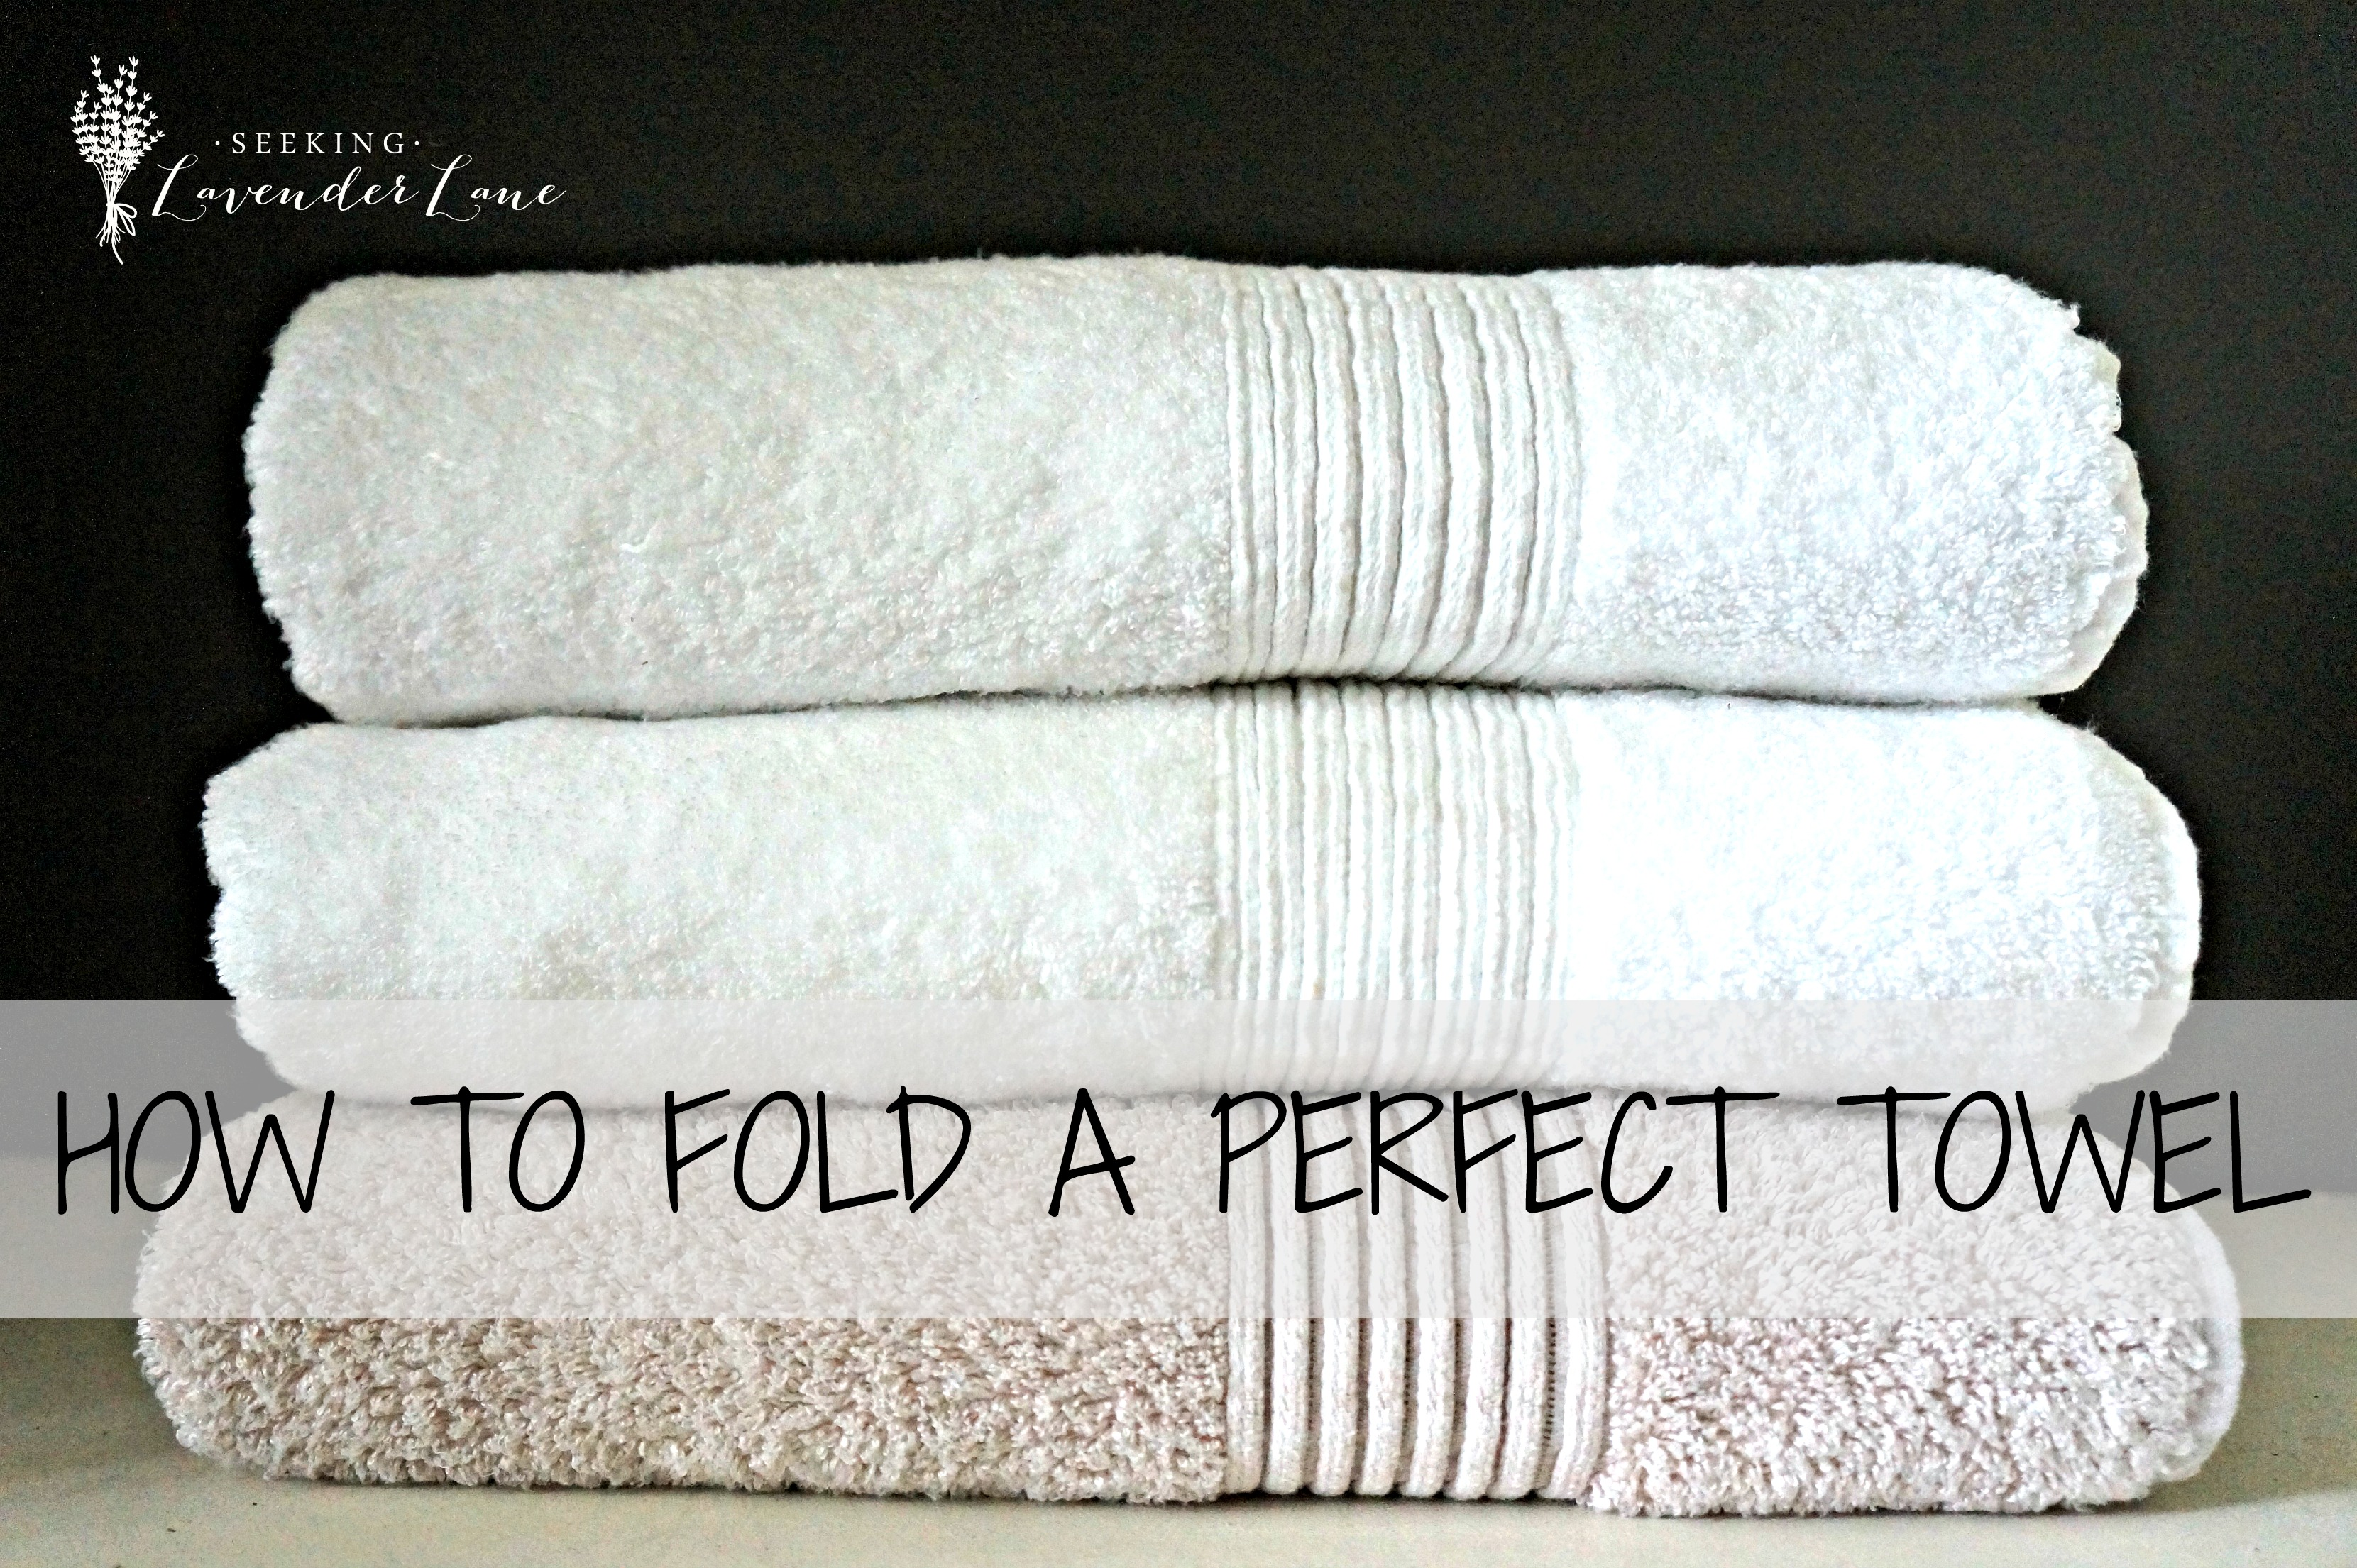 How to Fold a Perfect Towel